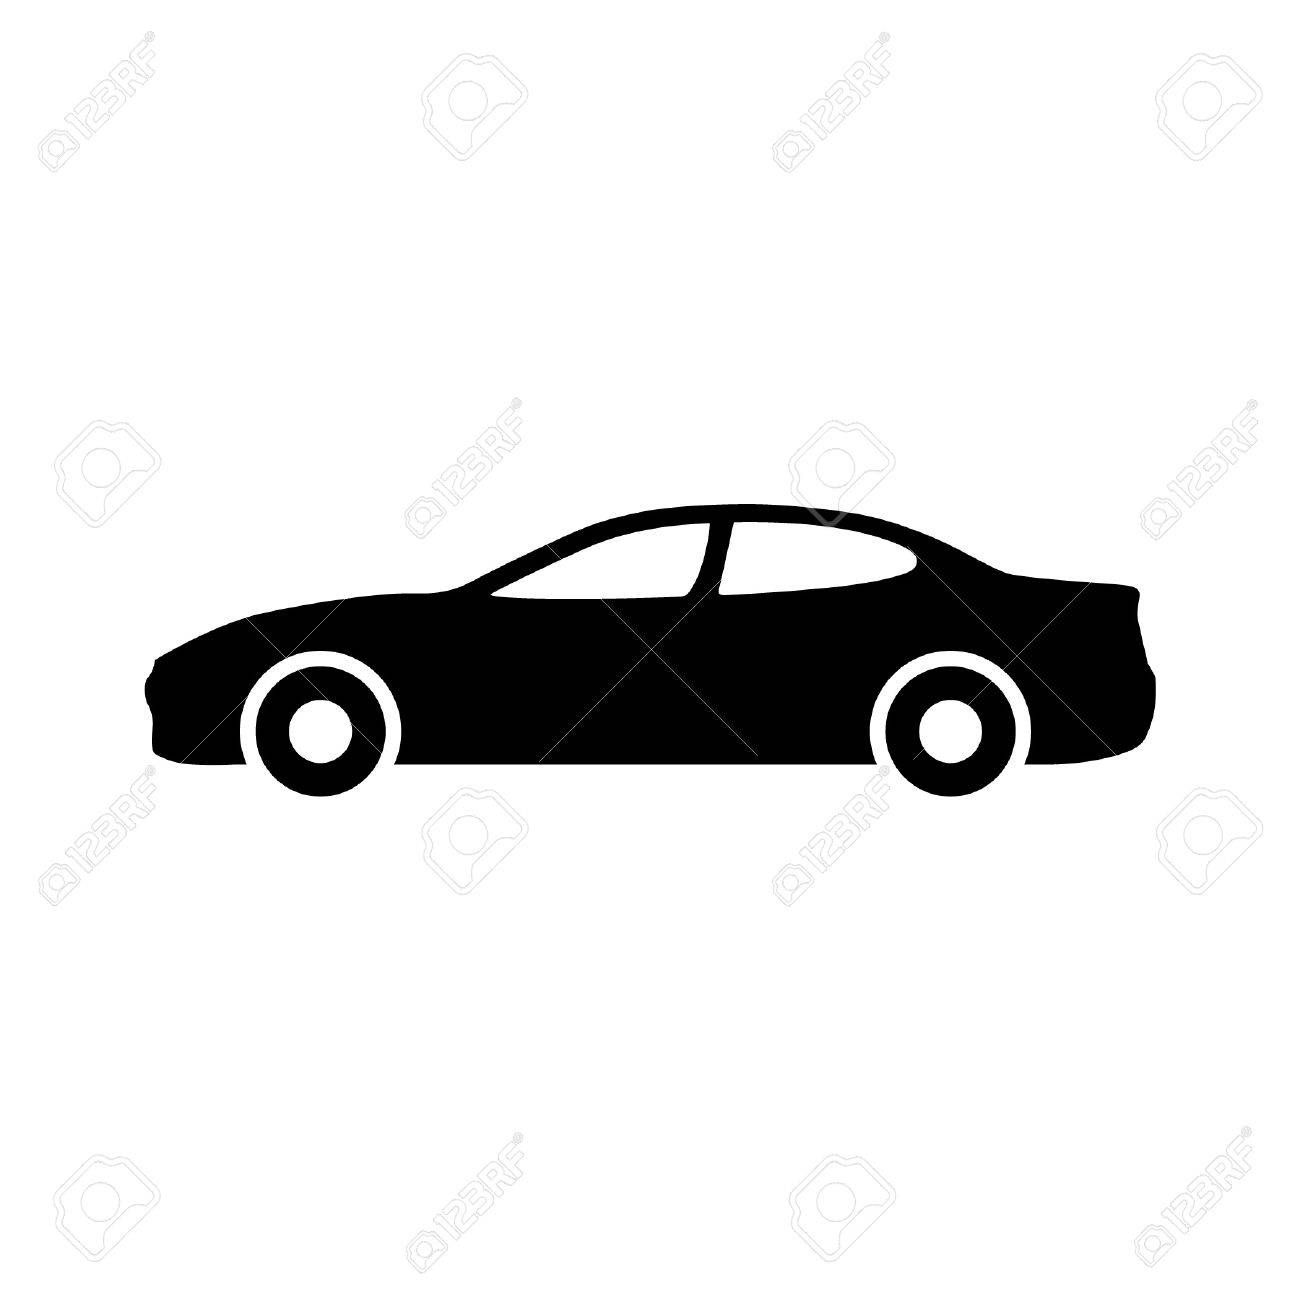 Luxury car automobile side view flat icon for apps and websites